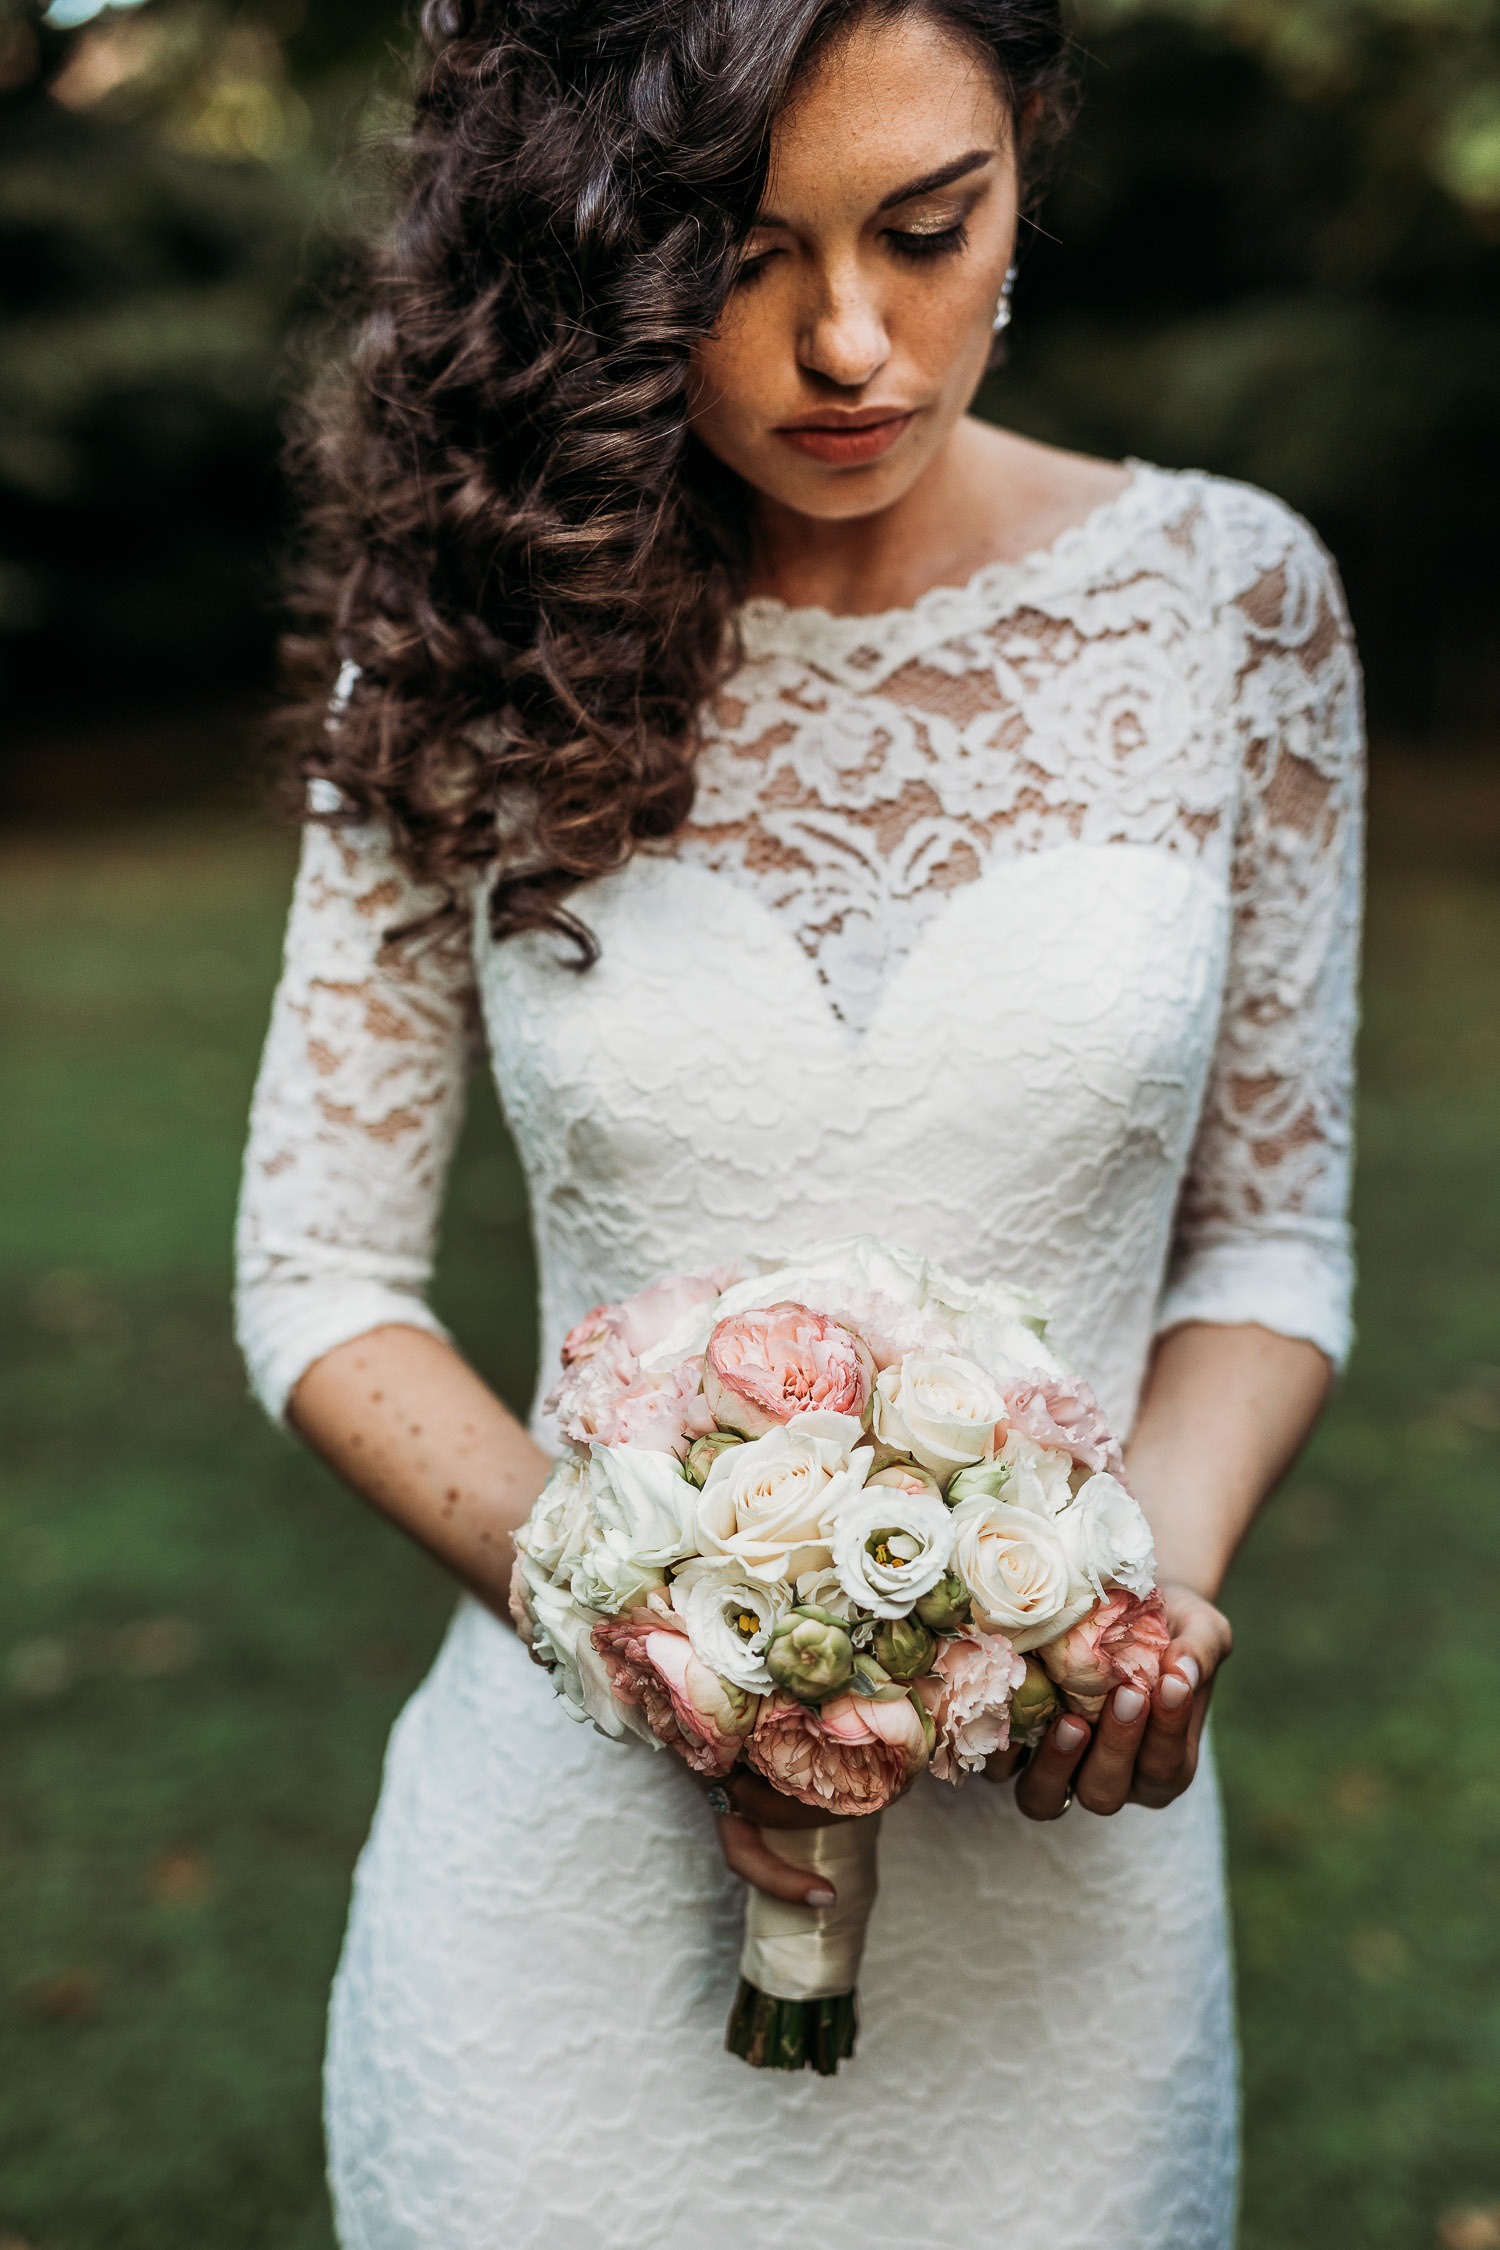 Elegant bride with lace dress and a round classic bouquet